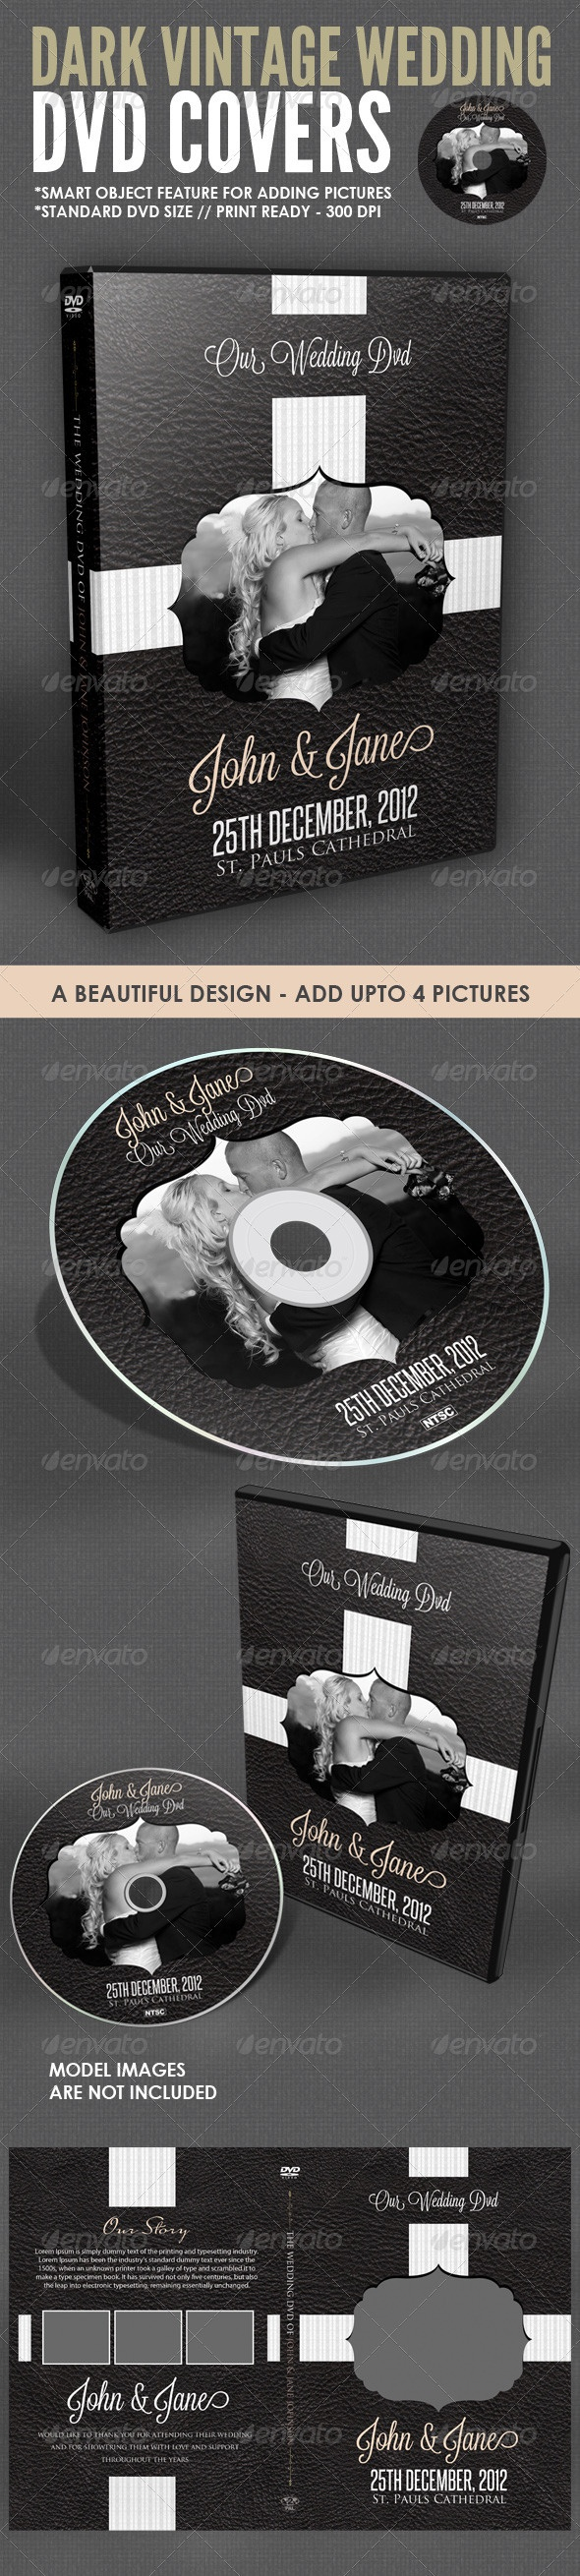 Cd box template download free vector art stock graphics amp images - Dark Vintage Wedding Dvd Cover Template